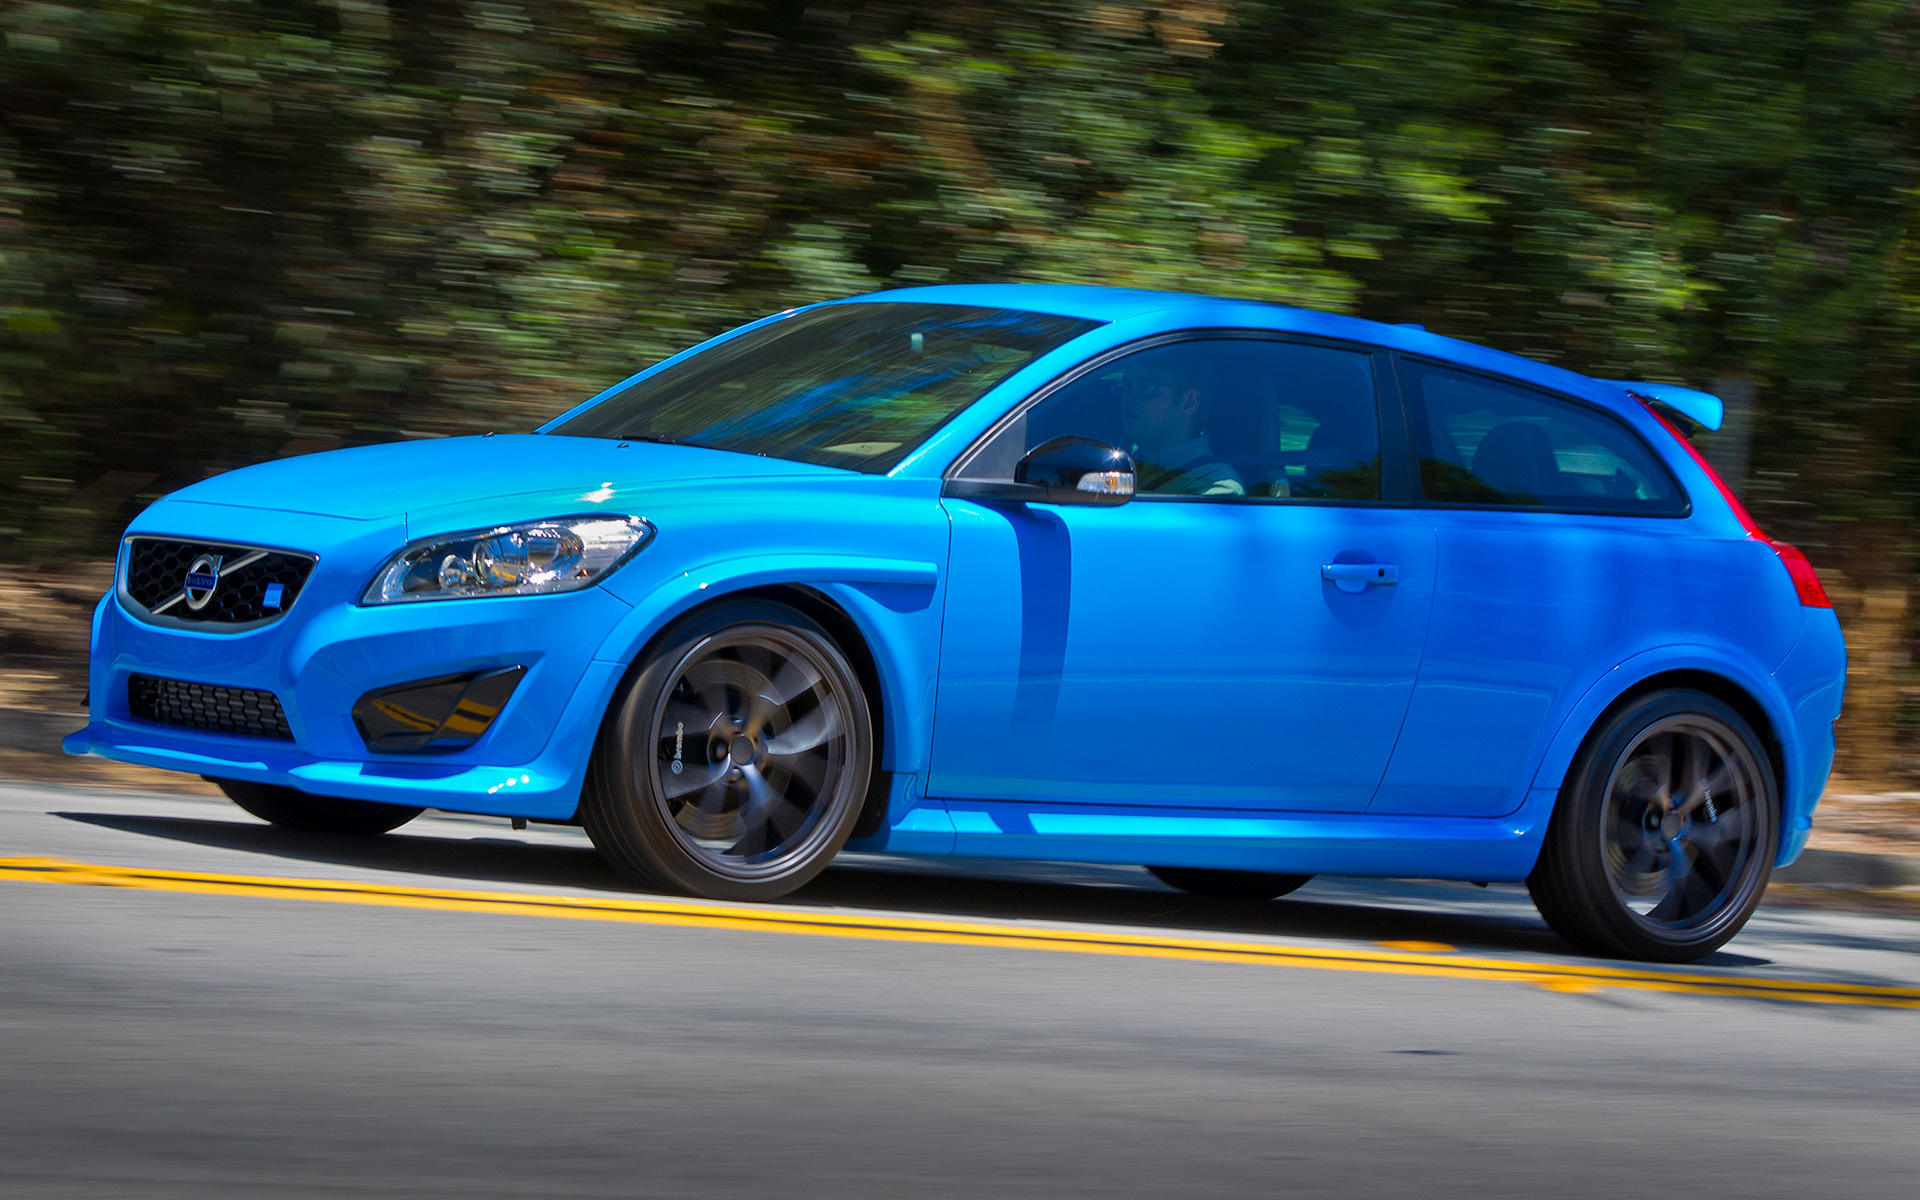 Volvo C30 Polestar Performance Concept (2010) Wallpapers and HD Images ...